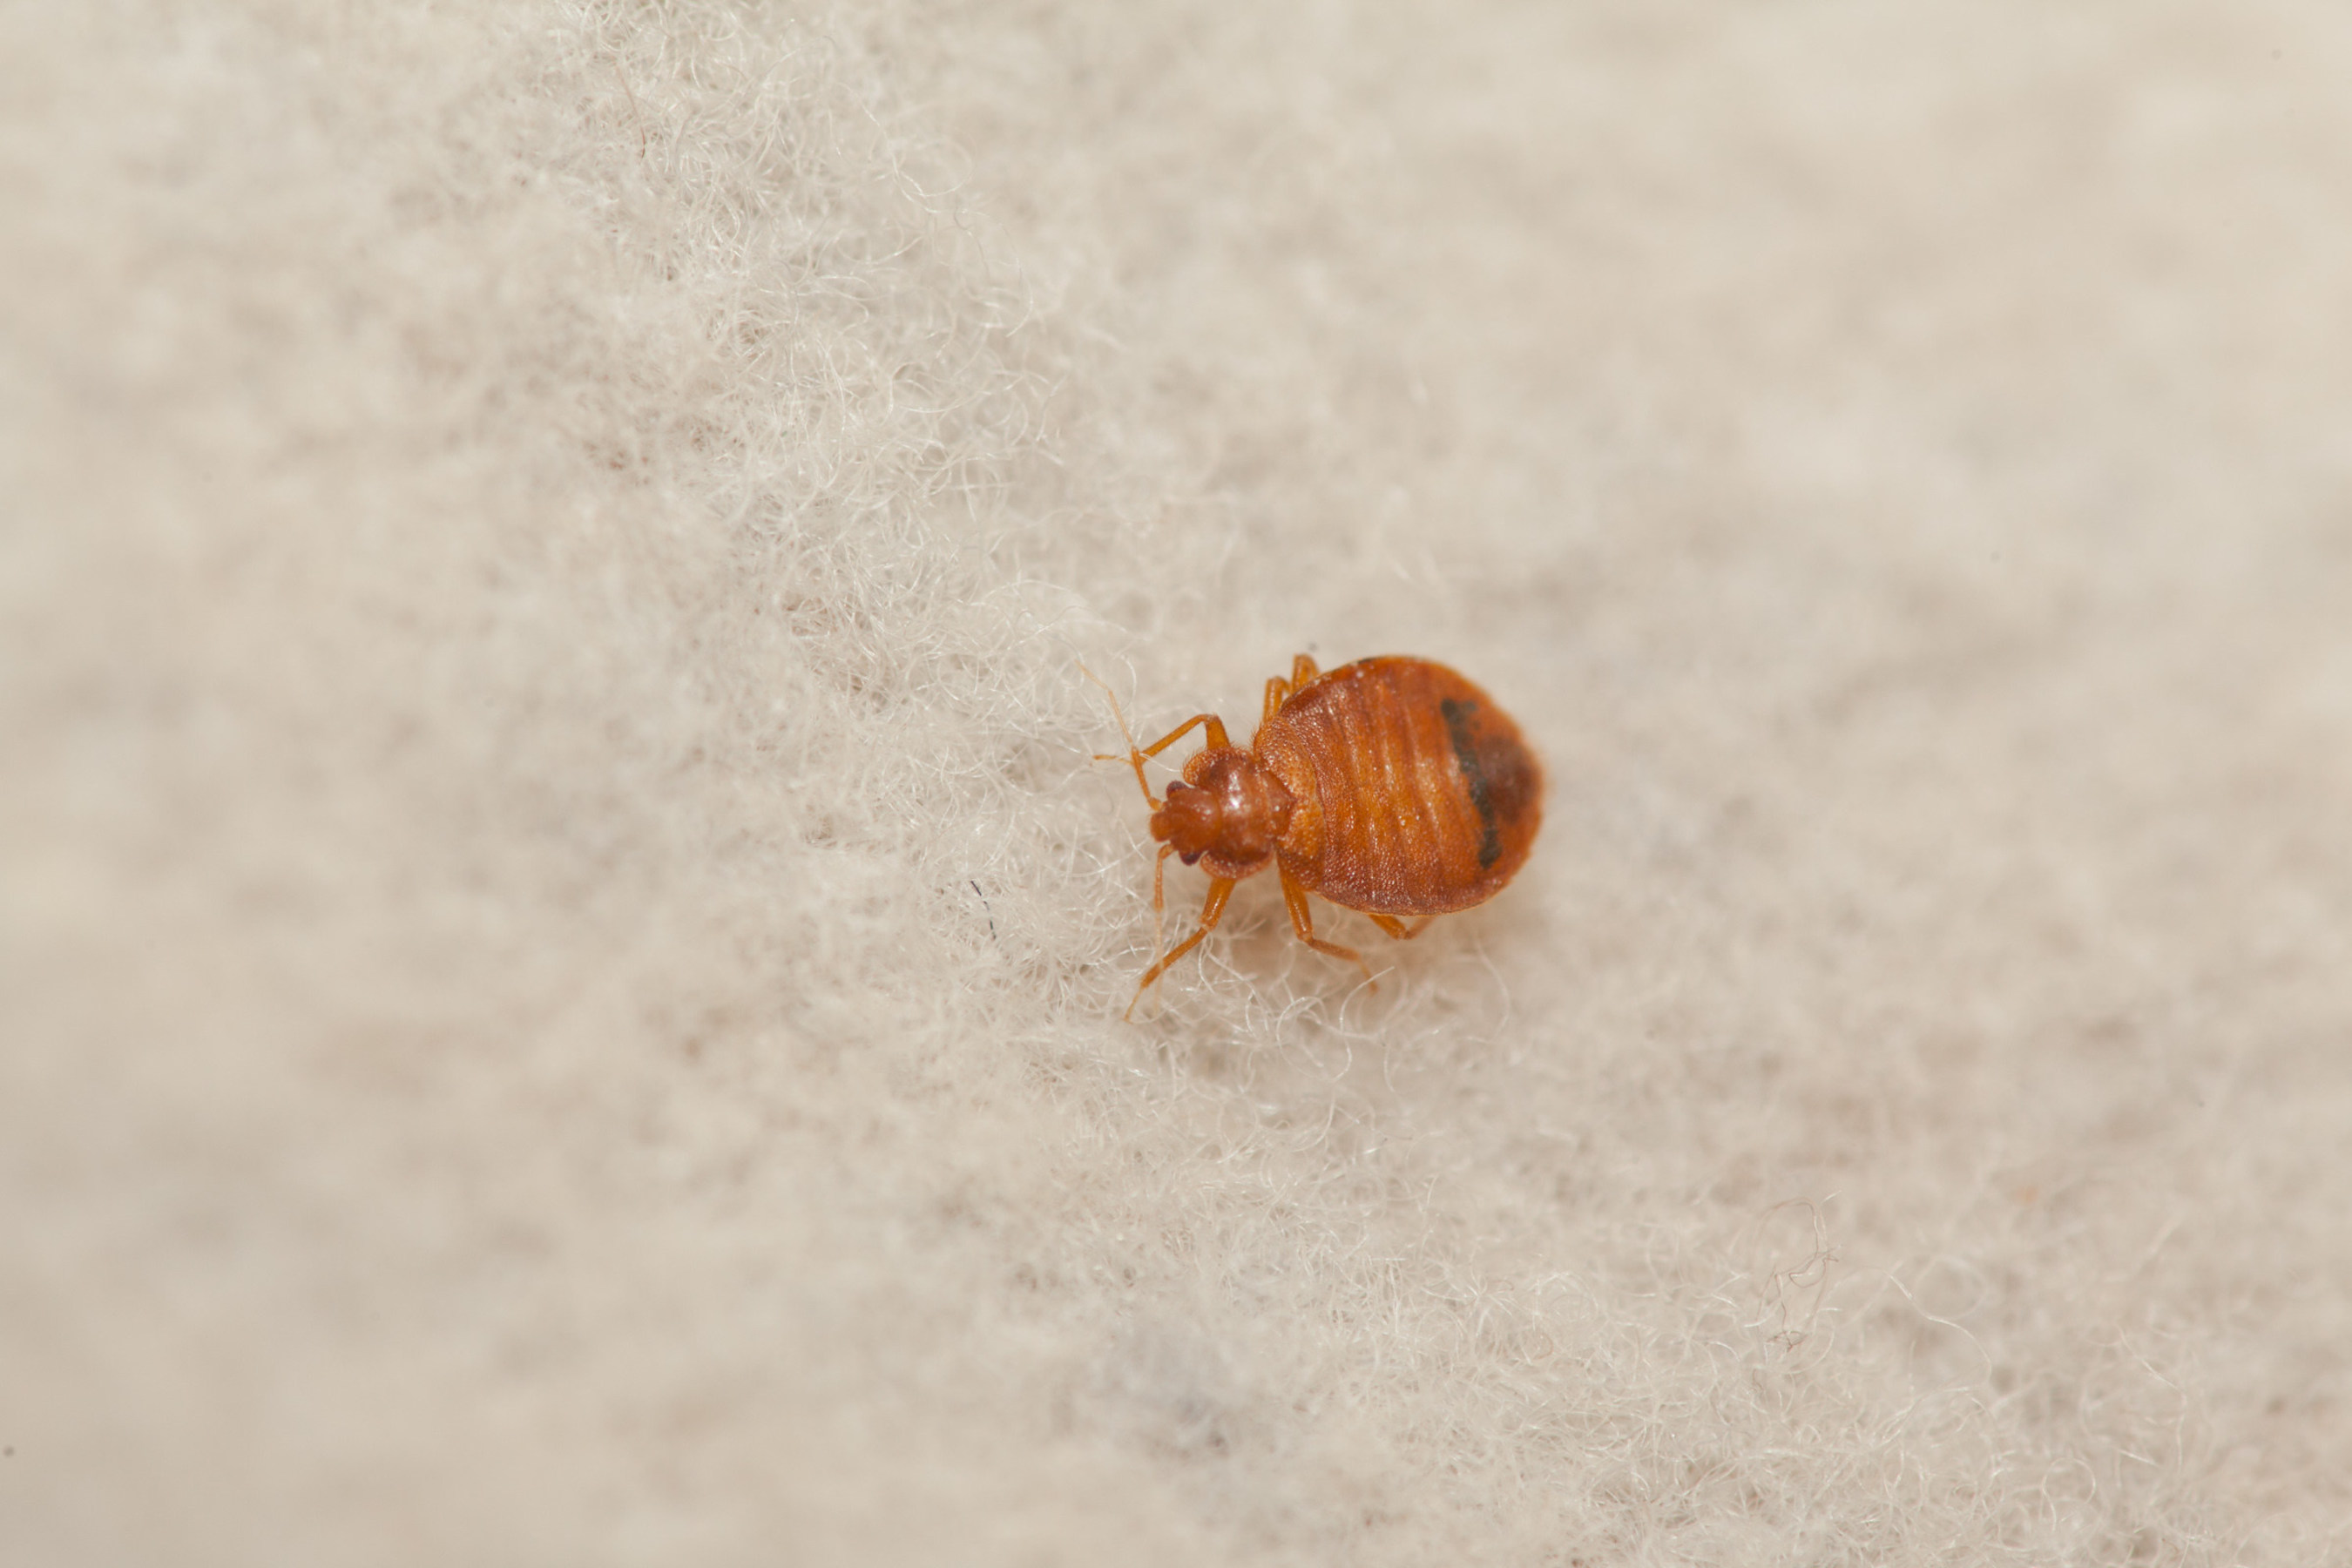 Chicago tops Orkin's bed bug cities list for the 3rd year in a row. Orkin experts say bed bugs are a serious issue across the country. Rollins, Orkin's parent company, reports an 18% increase in bed bug revenue in 2014.